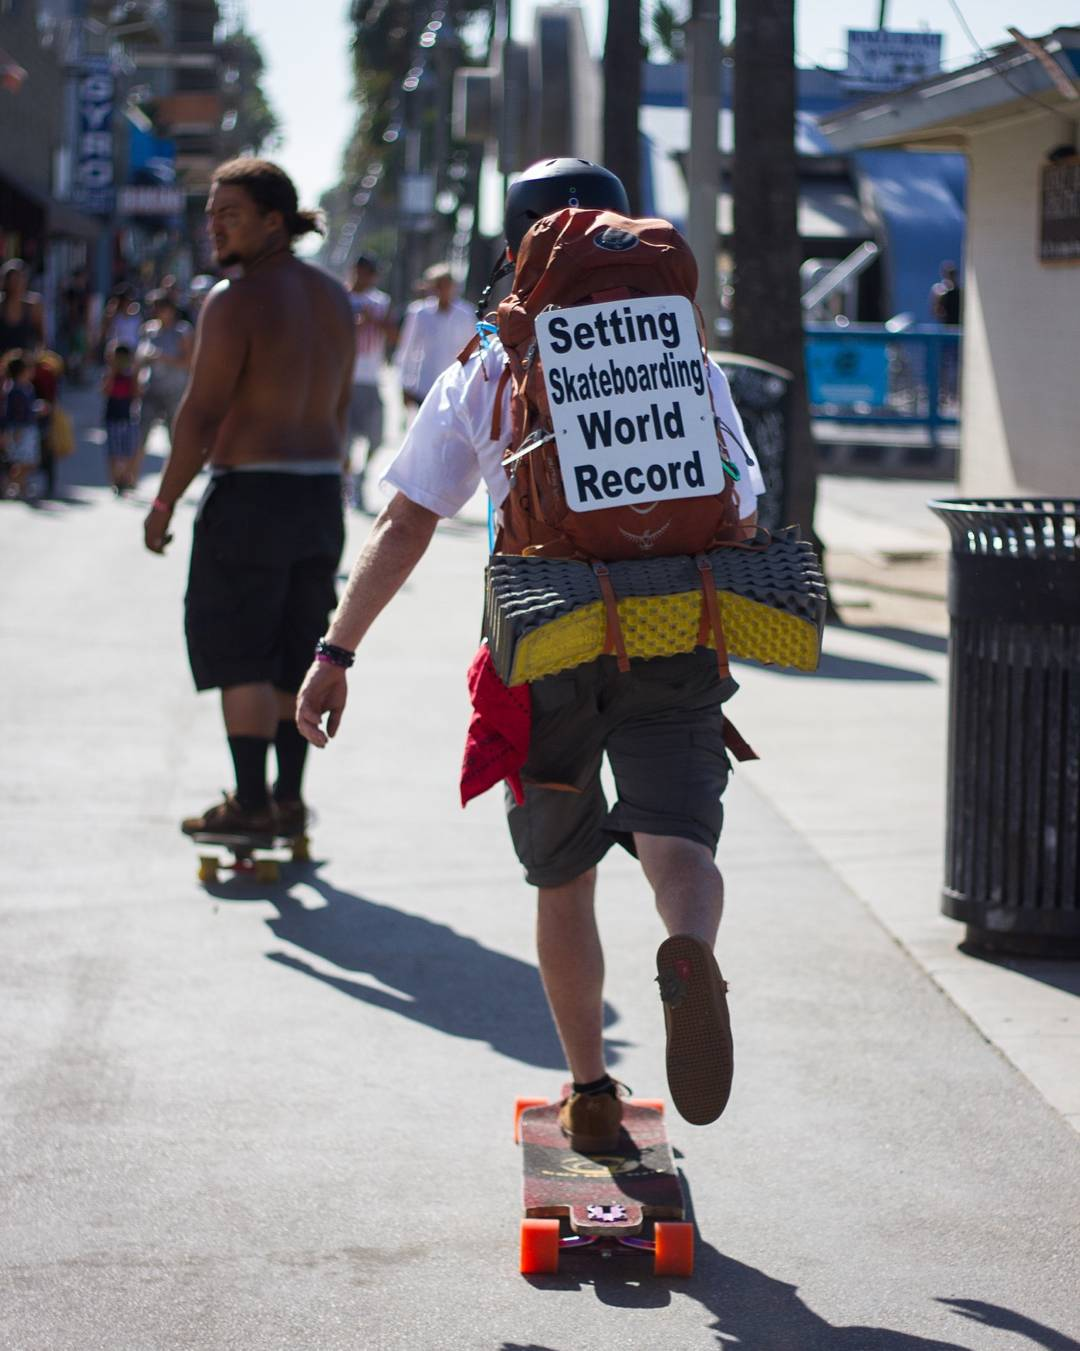 If you see this sign attached to the back pack of a red headed man, that would be @wyattwelter.  A man with a mission, Wyatt is breaking the world record for longest distance pushed on a skateboard. When he came through LA, he had already covered 3,541...